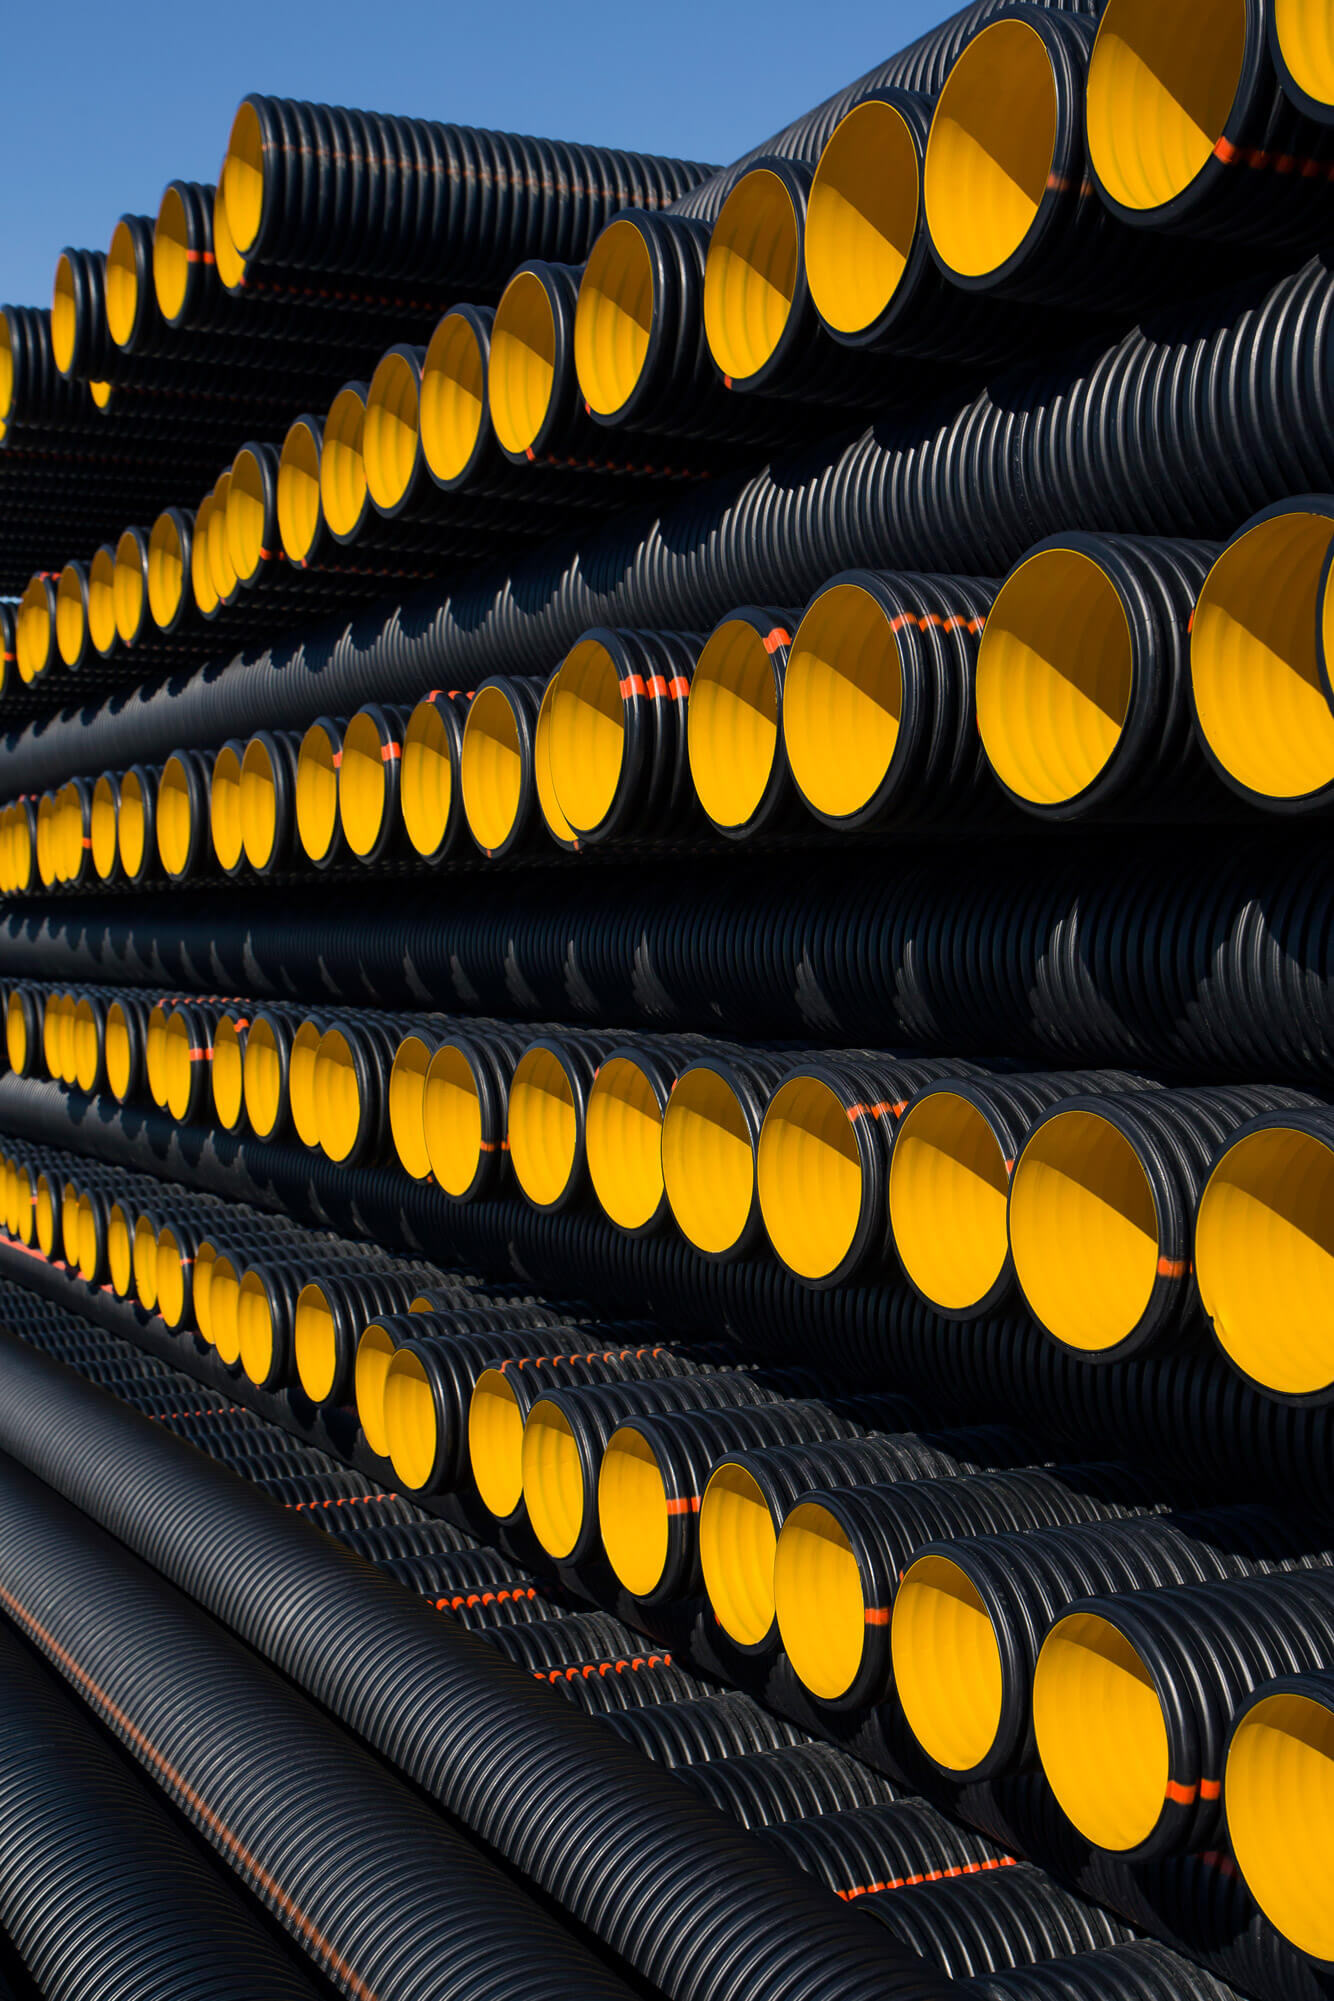 Polyvinyl chloride pipes are stored stacked